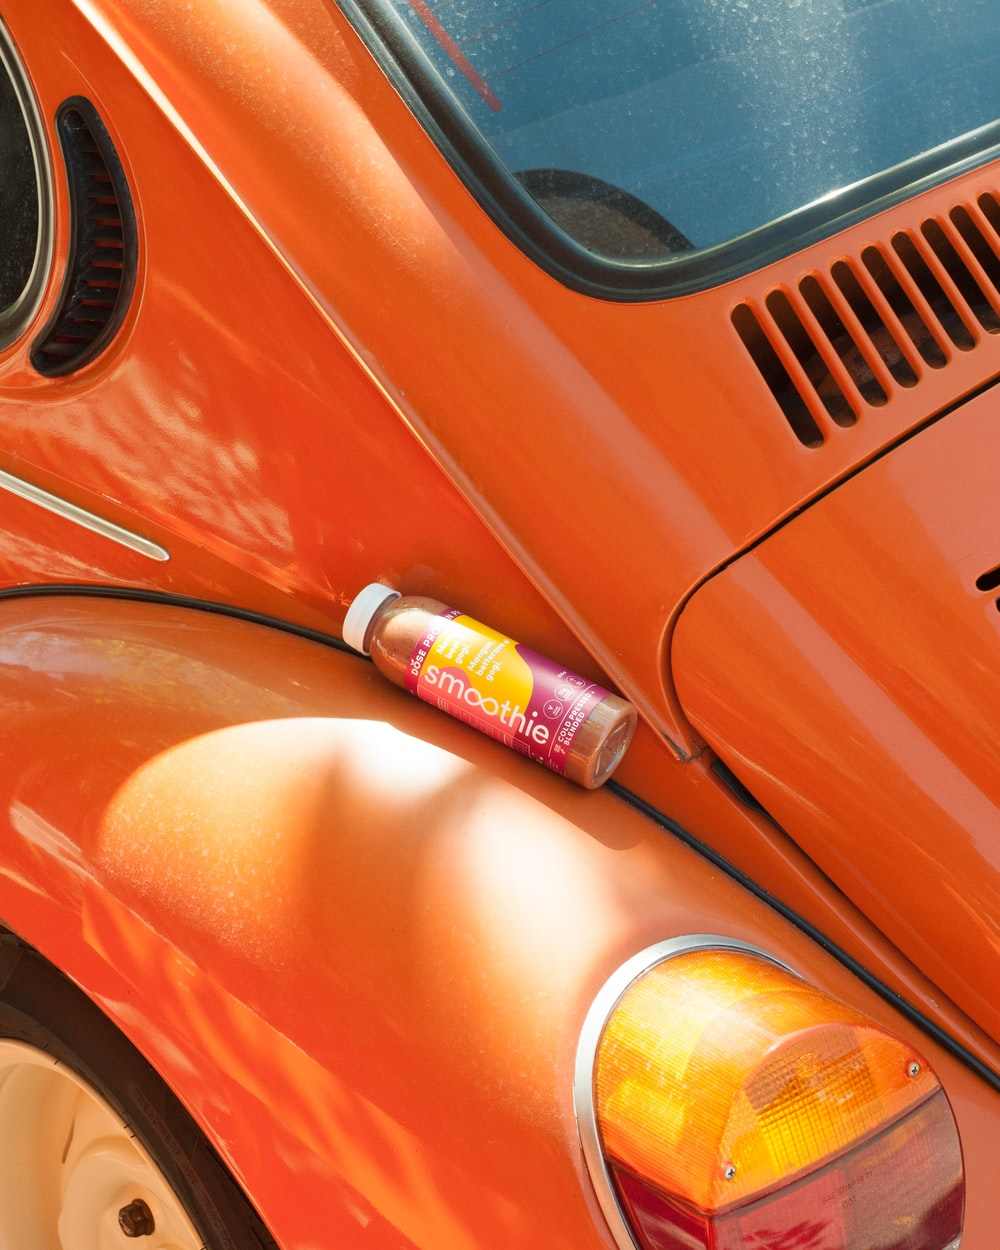 A bottle of DOSE Juice smoothie lies on an orange car